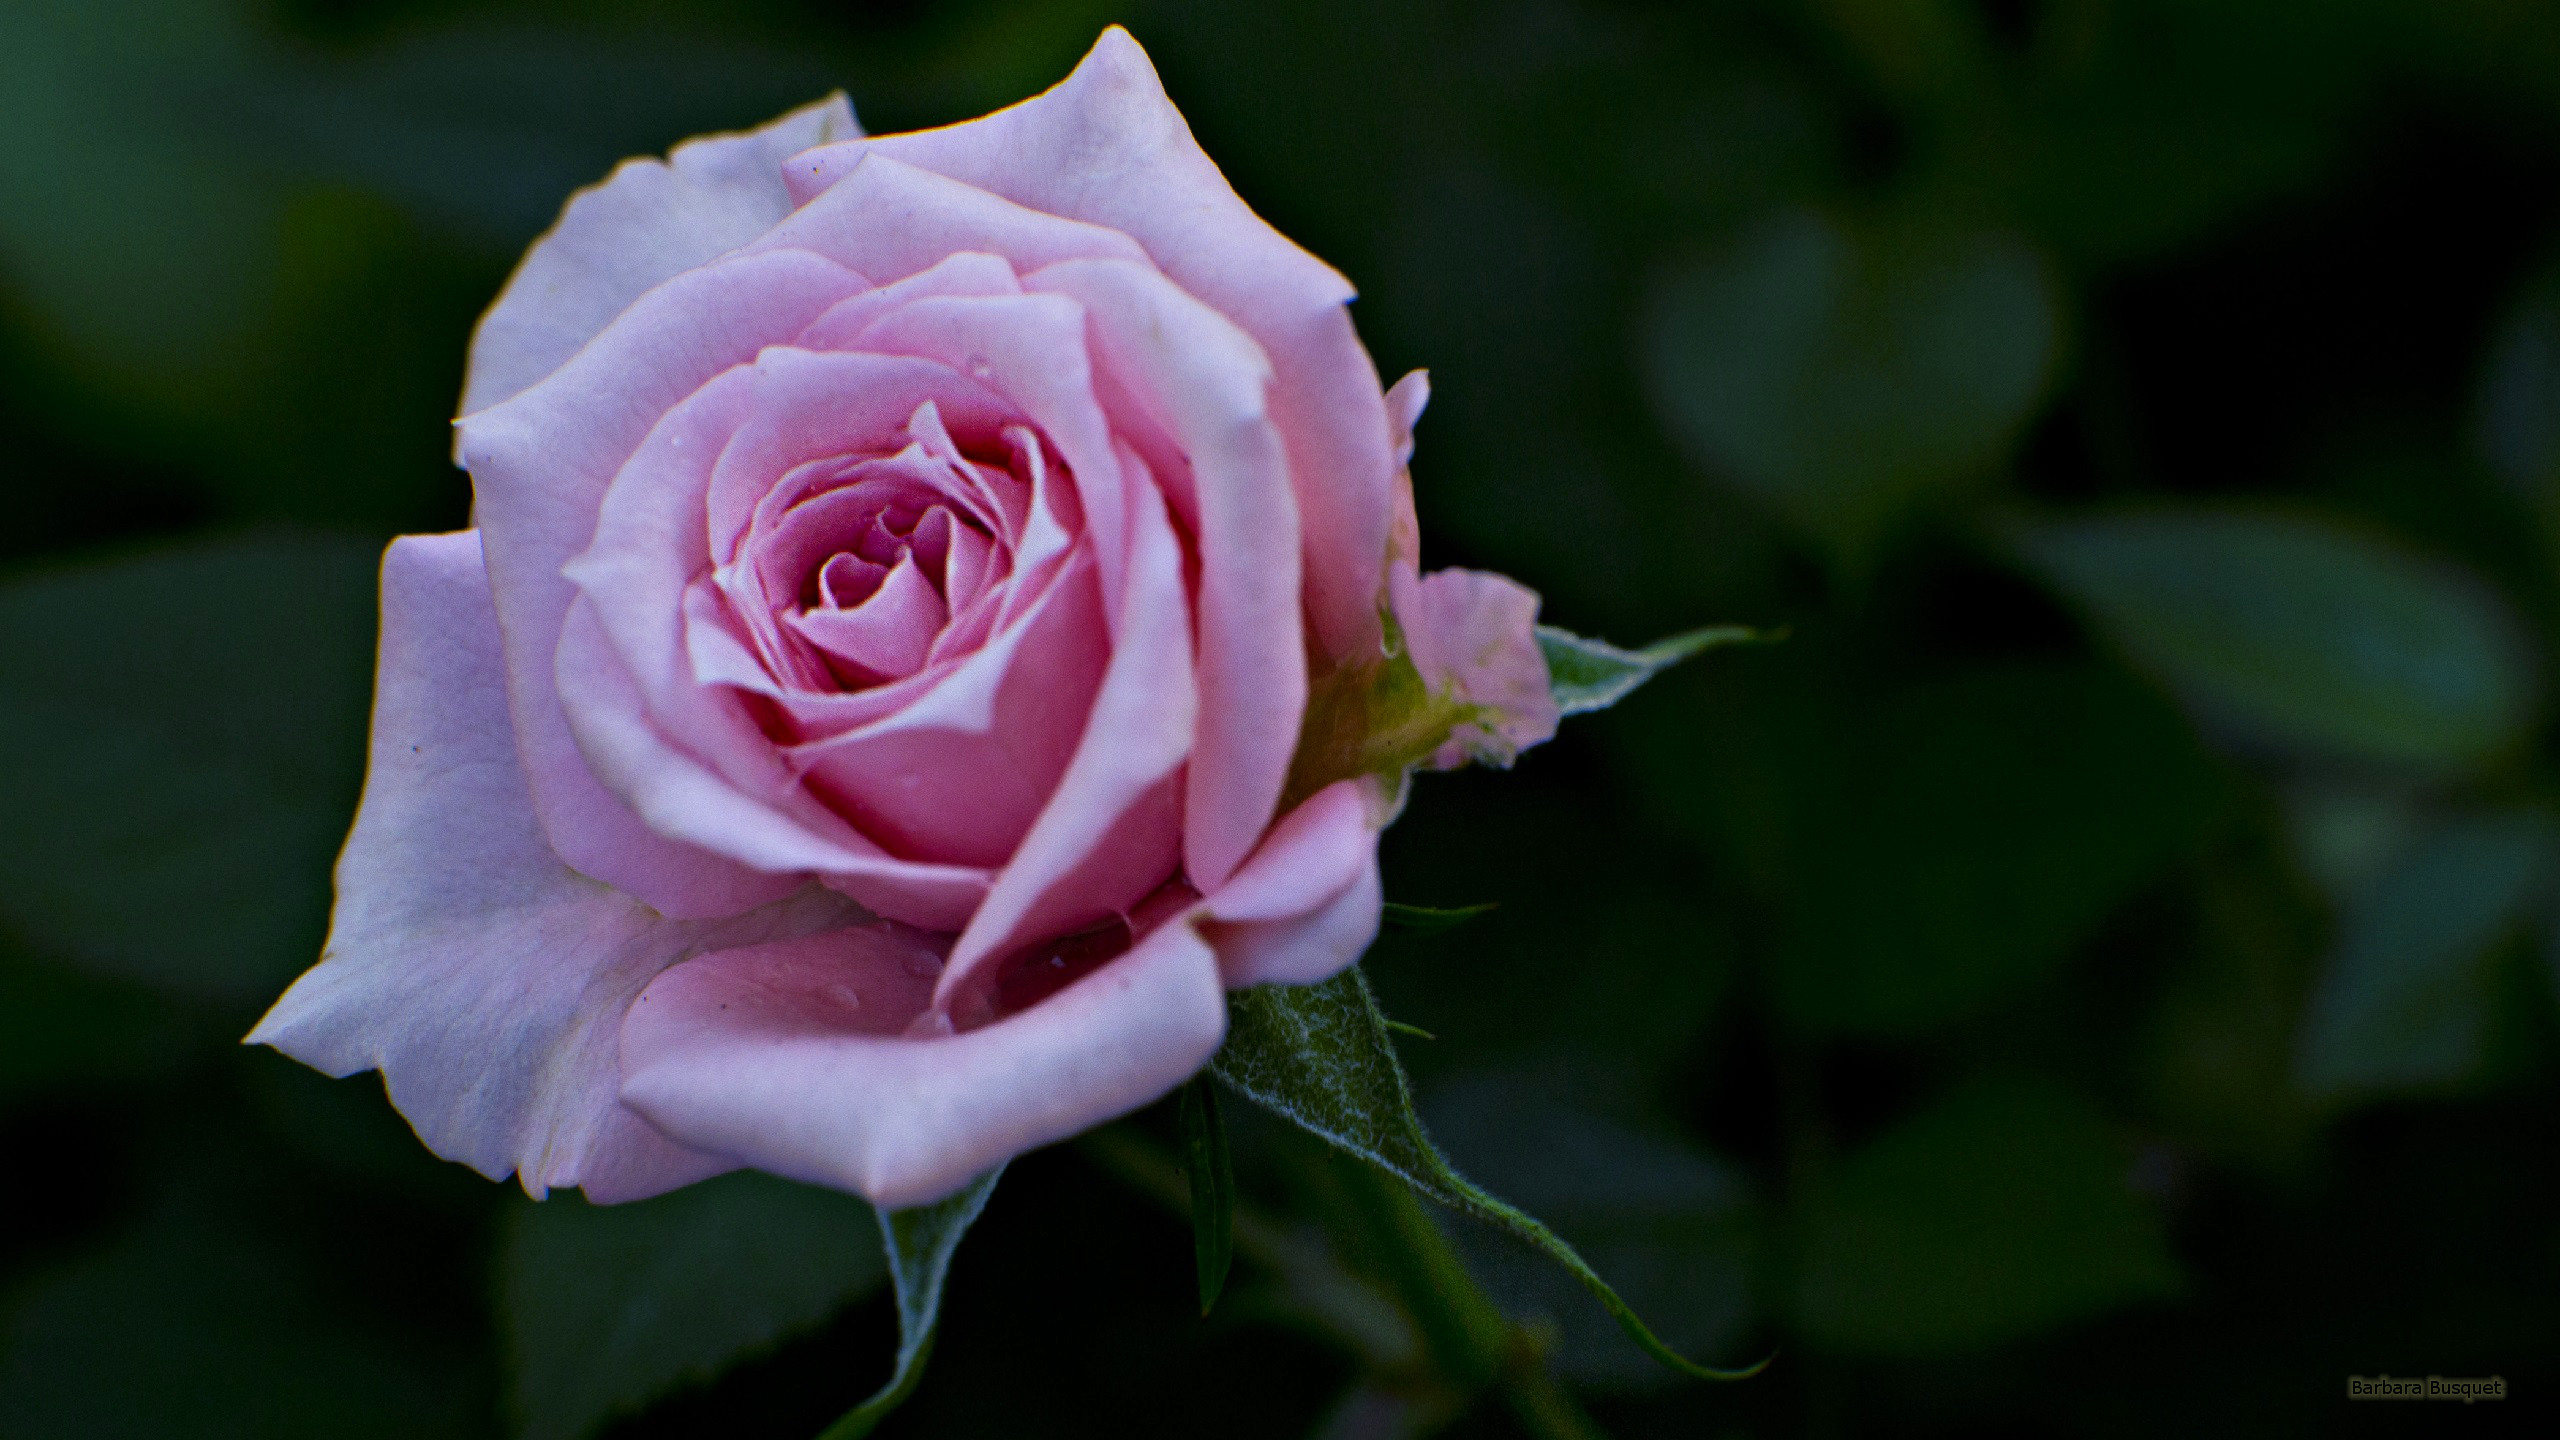 Beautiful roses wallpapers barbaras hd wallpapers - Pink rose hd wallpaper ...